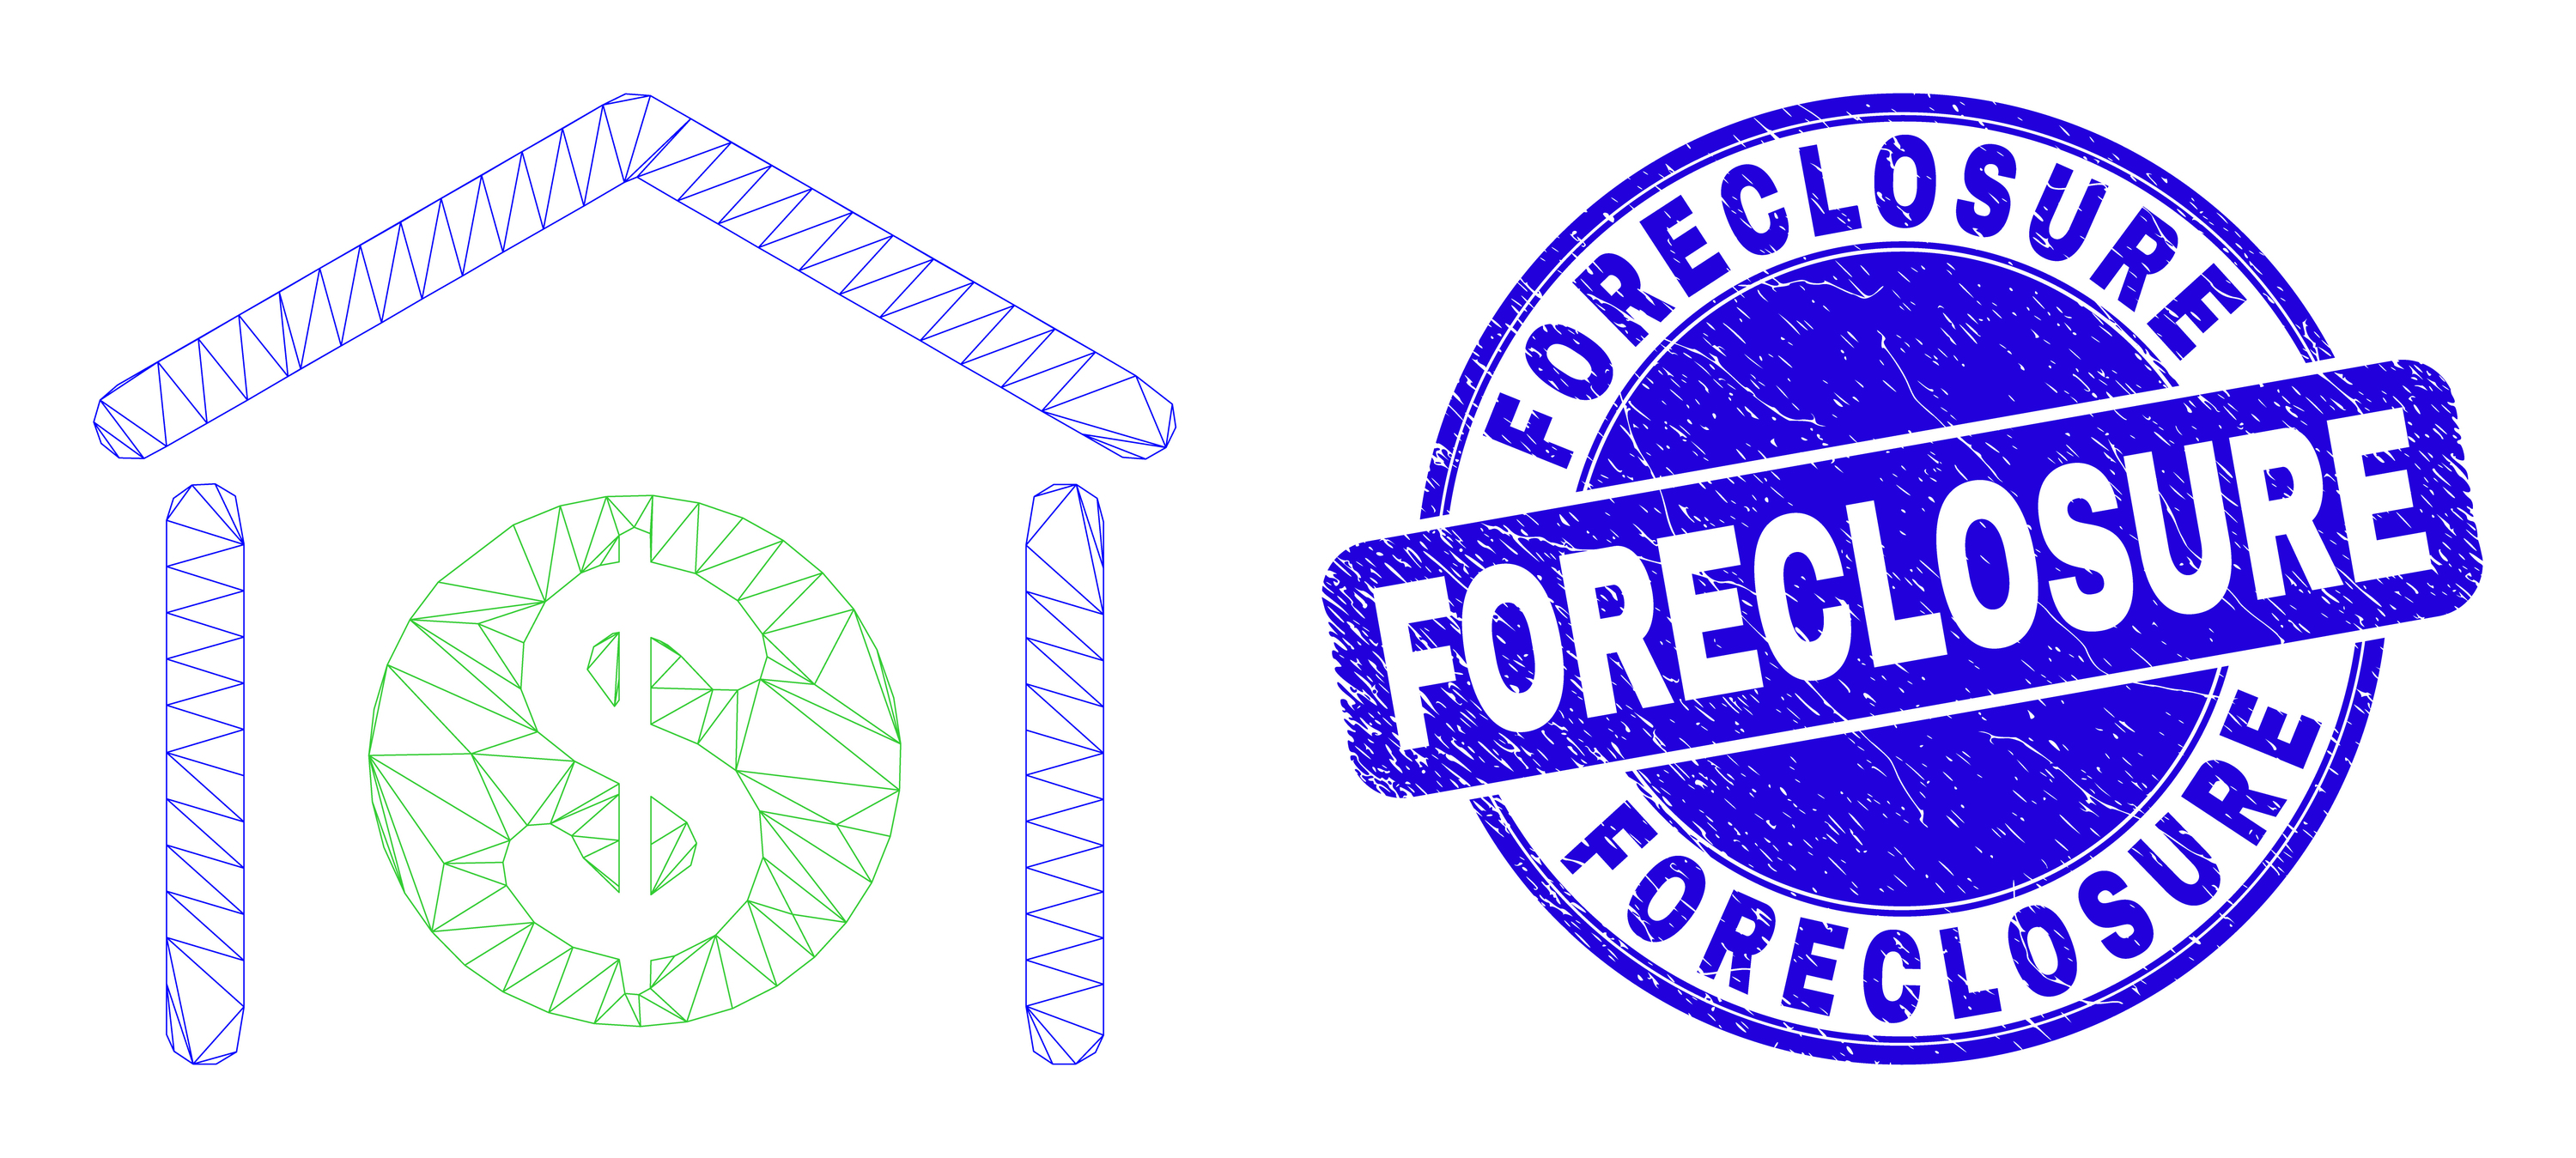 What is Preforeclosure